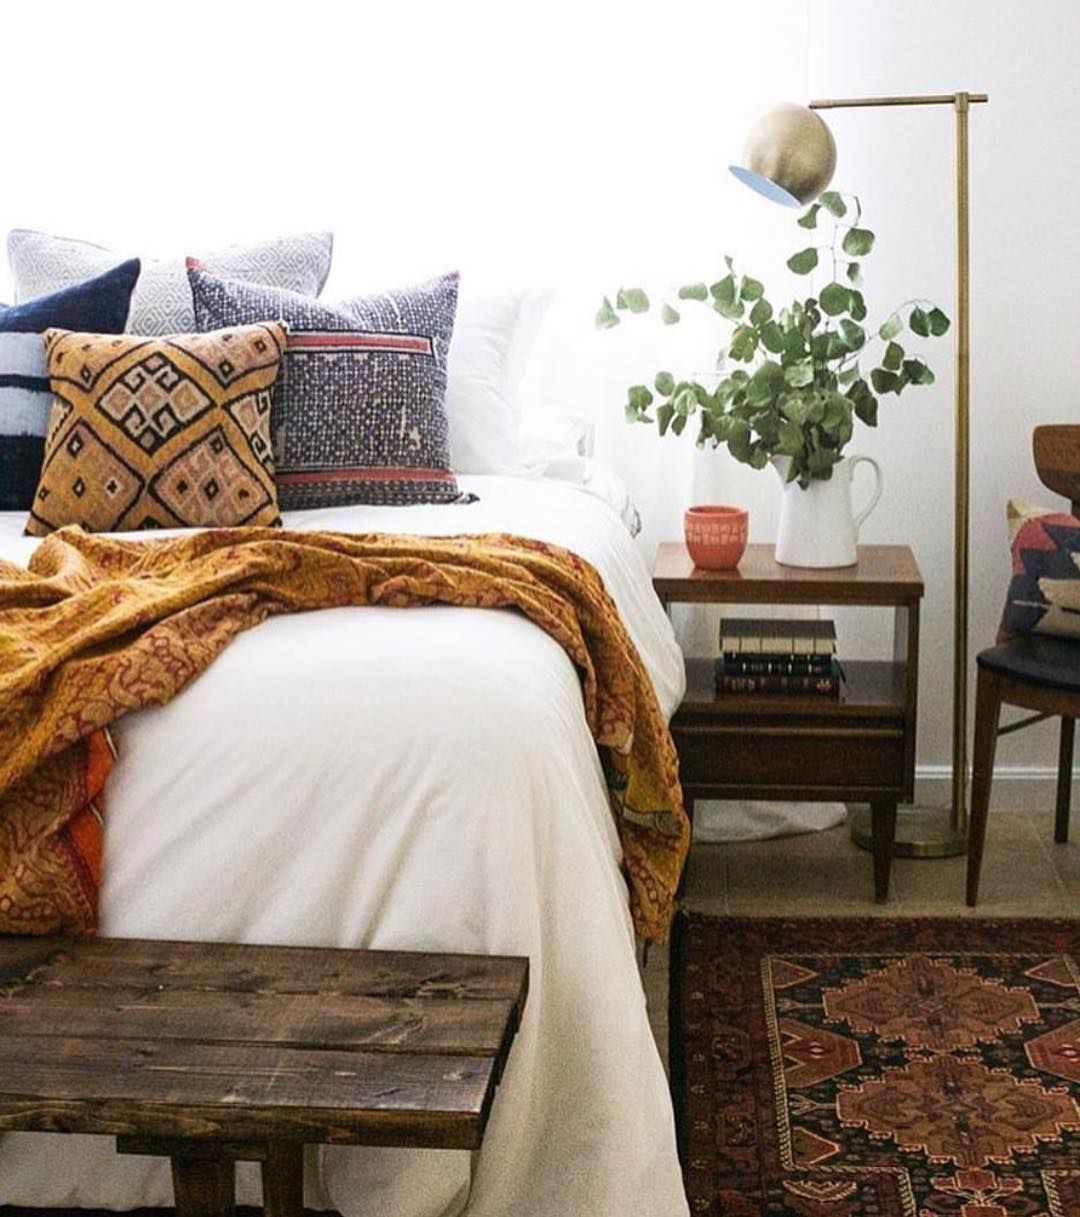 Beautiful Bedroom, Wooden Bench, Target Lamp, White Jug